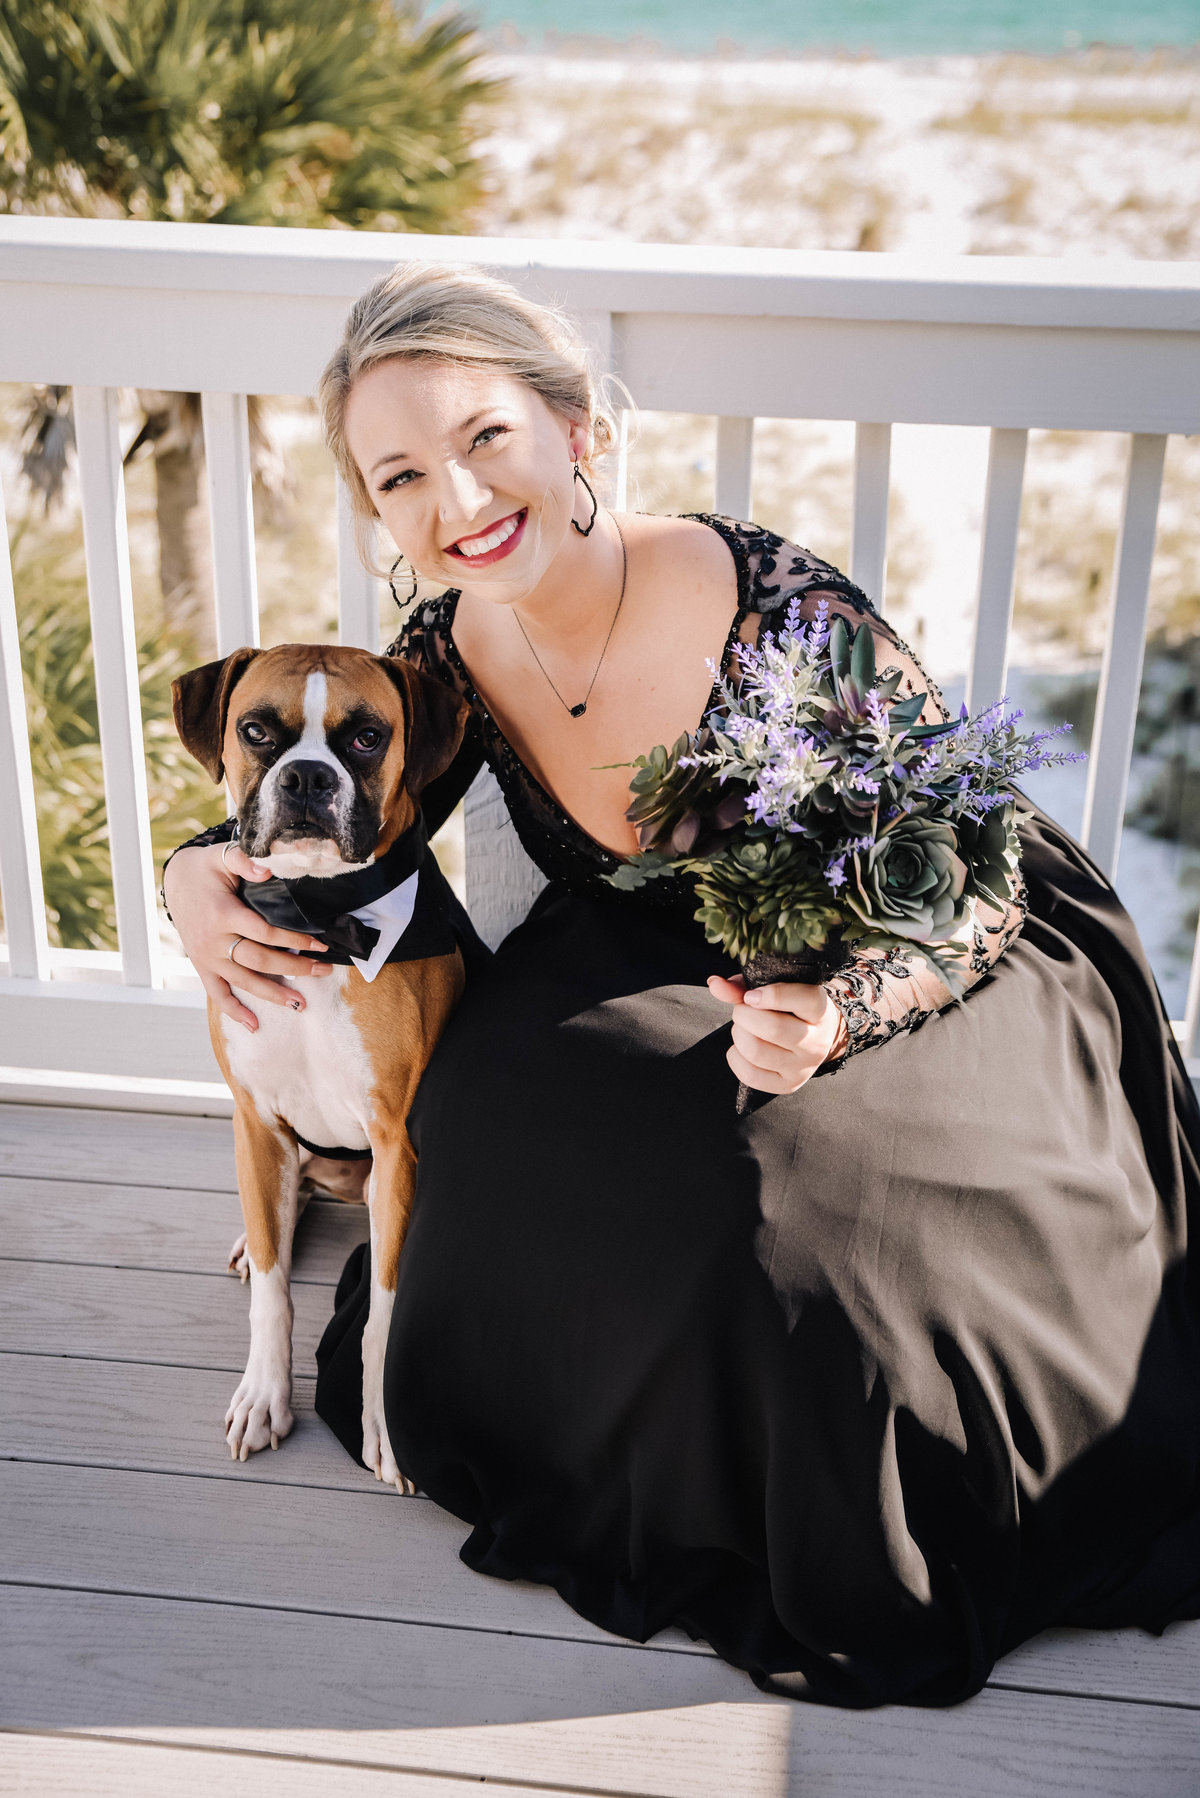 Bride in black wedding dress kneeling down hugging her dog  on her wedding day in Pensacola, FL